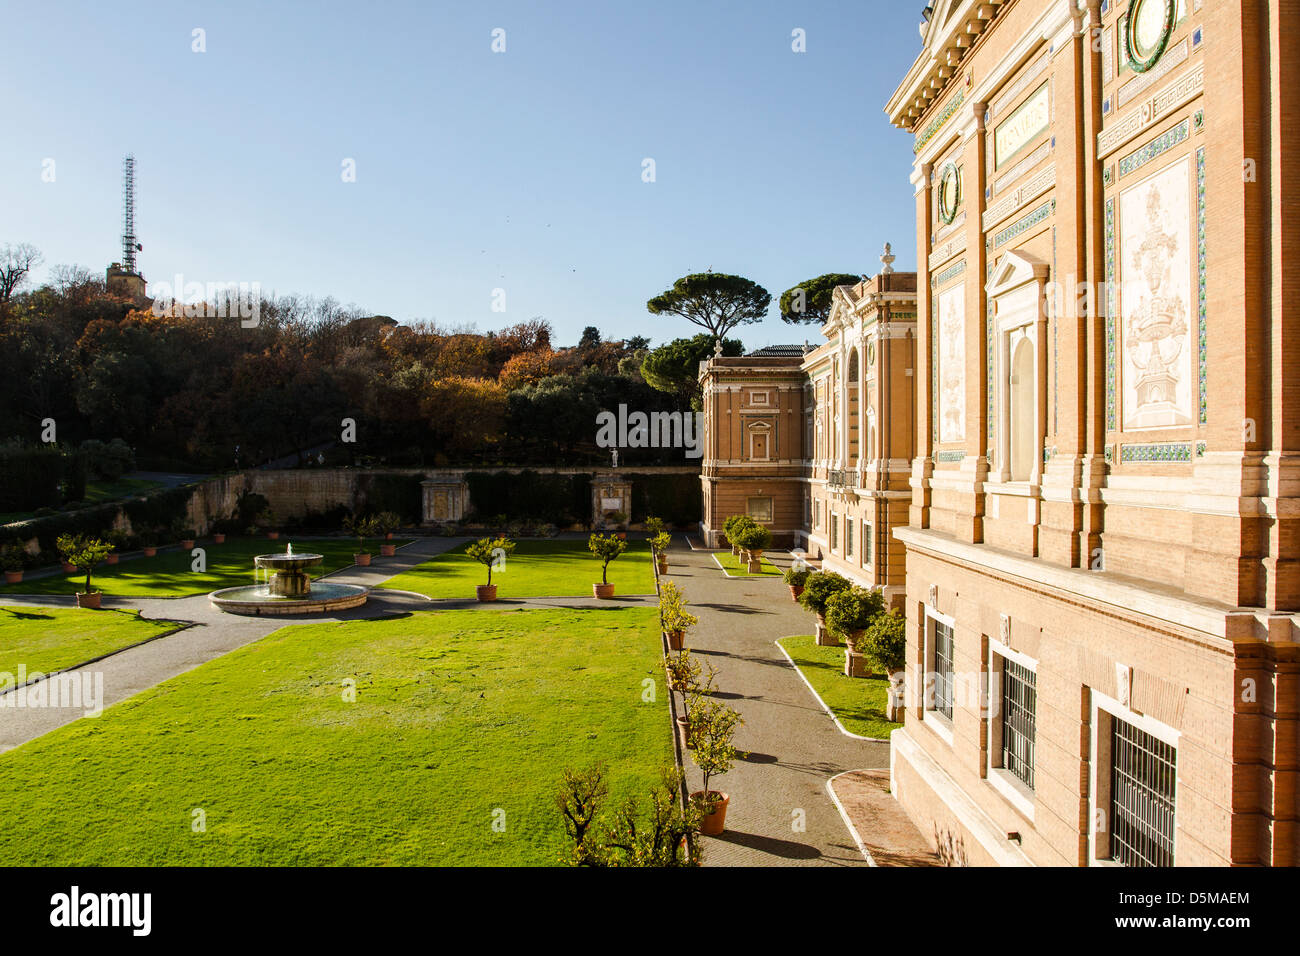 Facade of Belvedere Palace (Palazzeto del Belvedere) in Vatican Museum viewed from Belvedere Courtyard (Cortile - Stock Image